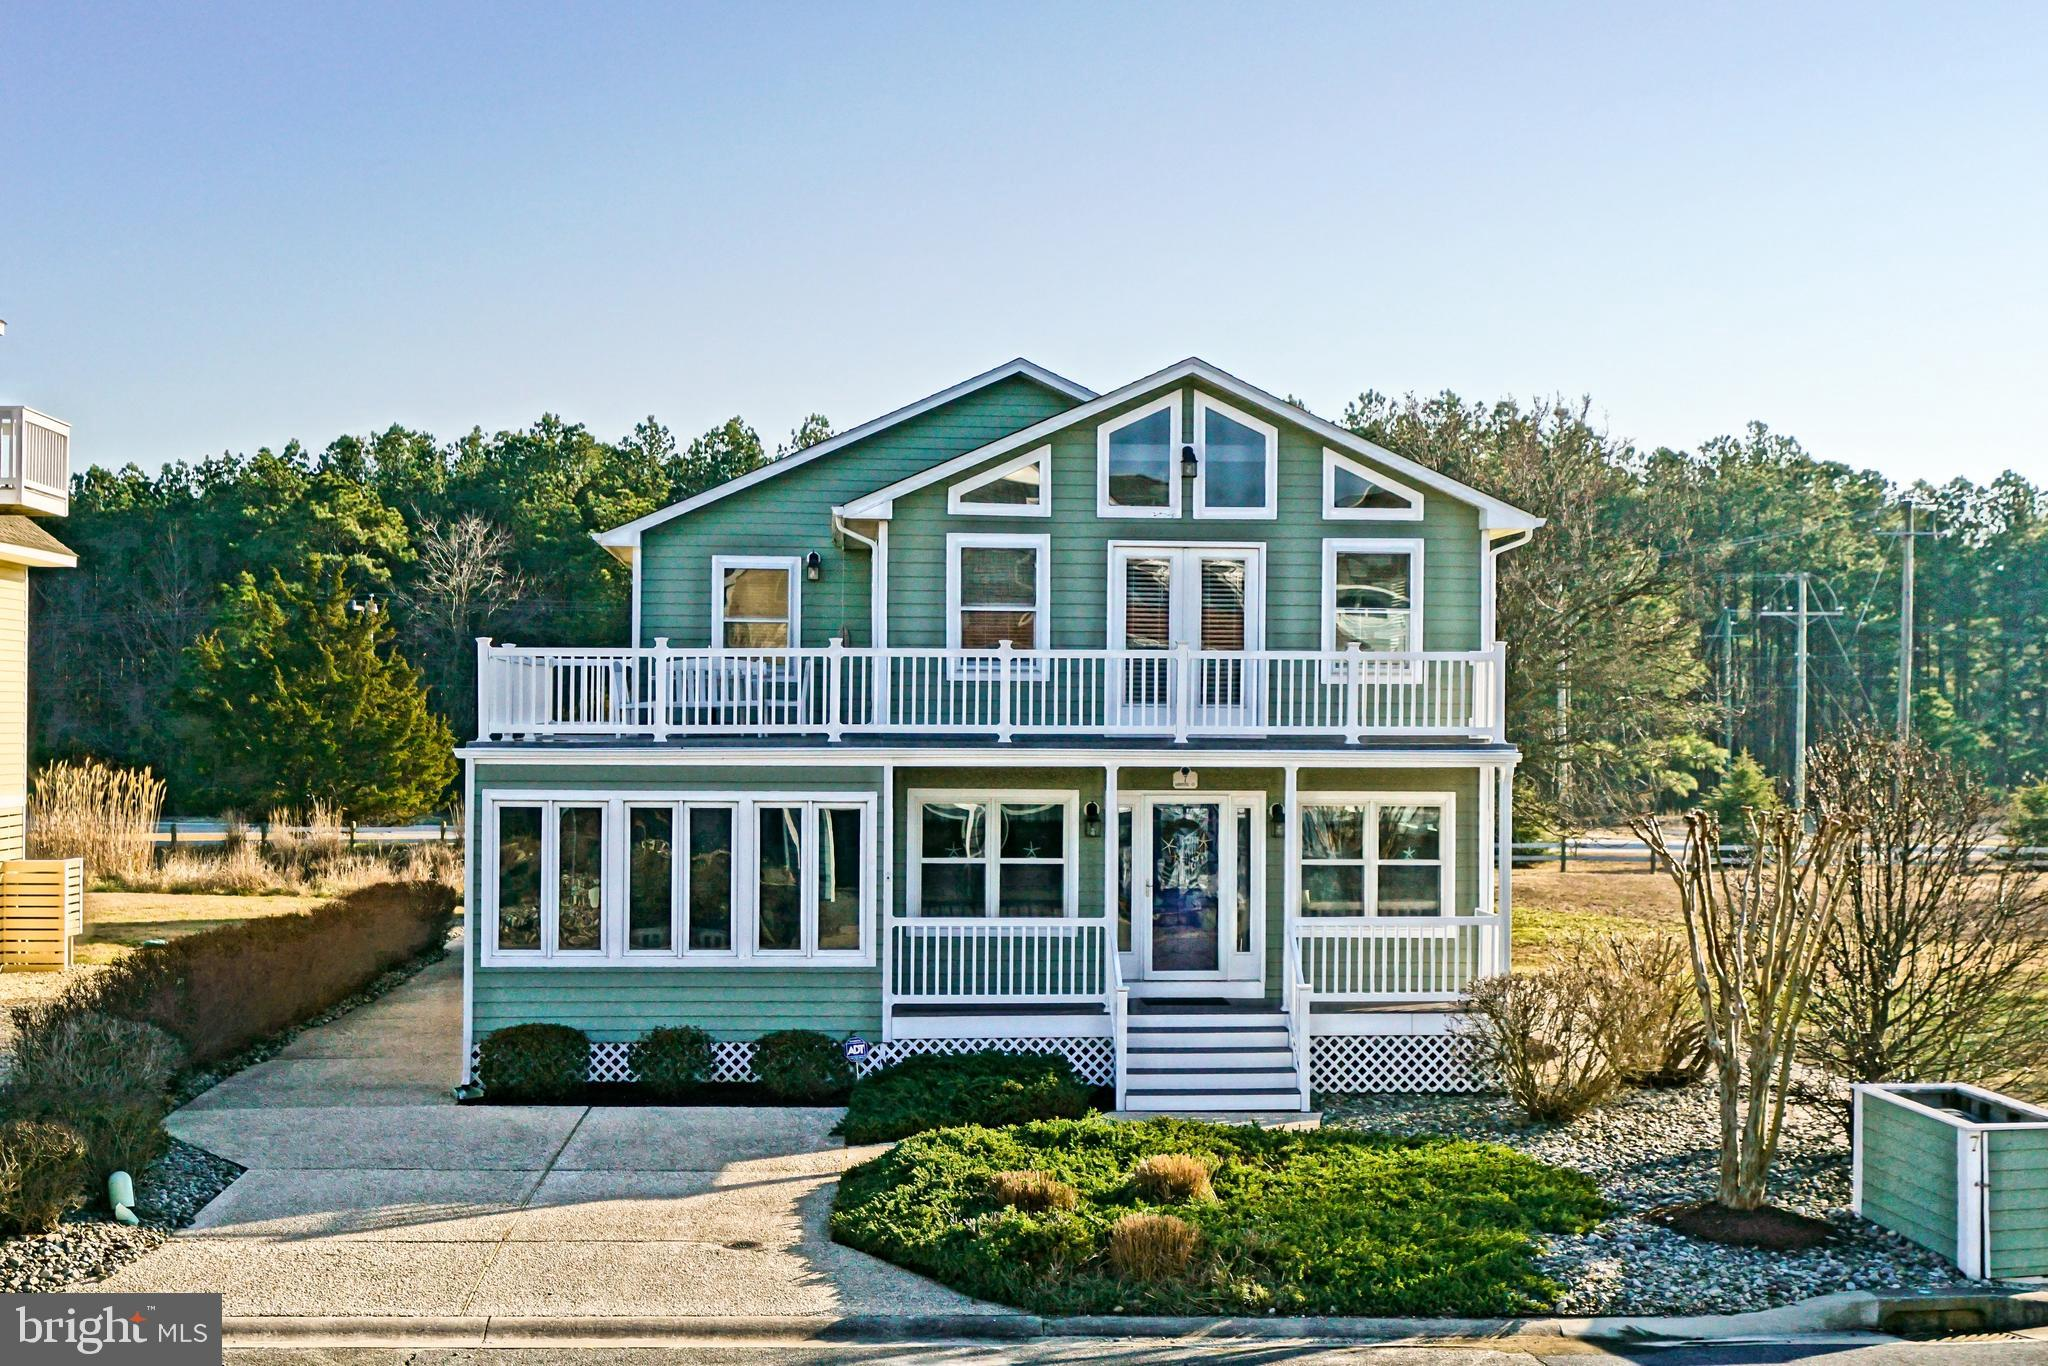 COASTAL LIVING STARTS HERE! Enjoy Delaware beach life from this fabulous Cape Shores 5-bedroom home. Entertaining is easy with this bright, beautiful kitchen open to the dining room, spacious enclosed all-seasons porch, large 1st & 2nd level owners suites, and more - all from this Lewes beachfront community with tennis, pool, and private pier. Stroll to the sands of the bay, bike into the sprawling natural preserve of Cape Henlopen State Park, and bike downtown to shopping, dining, and more. Call Today!